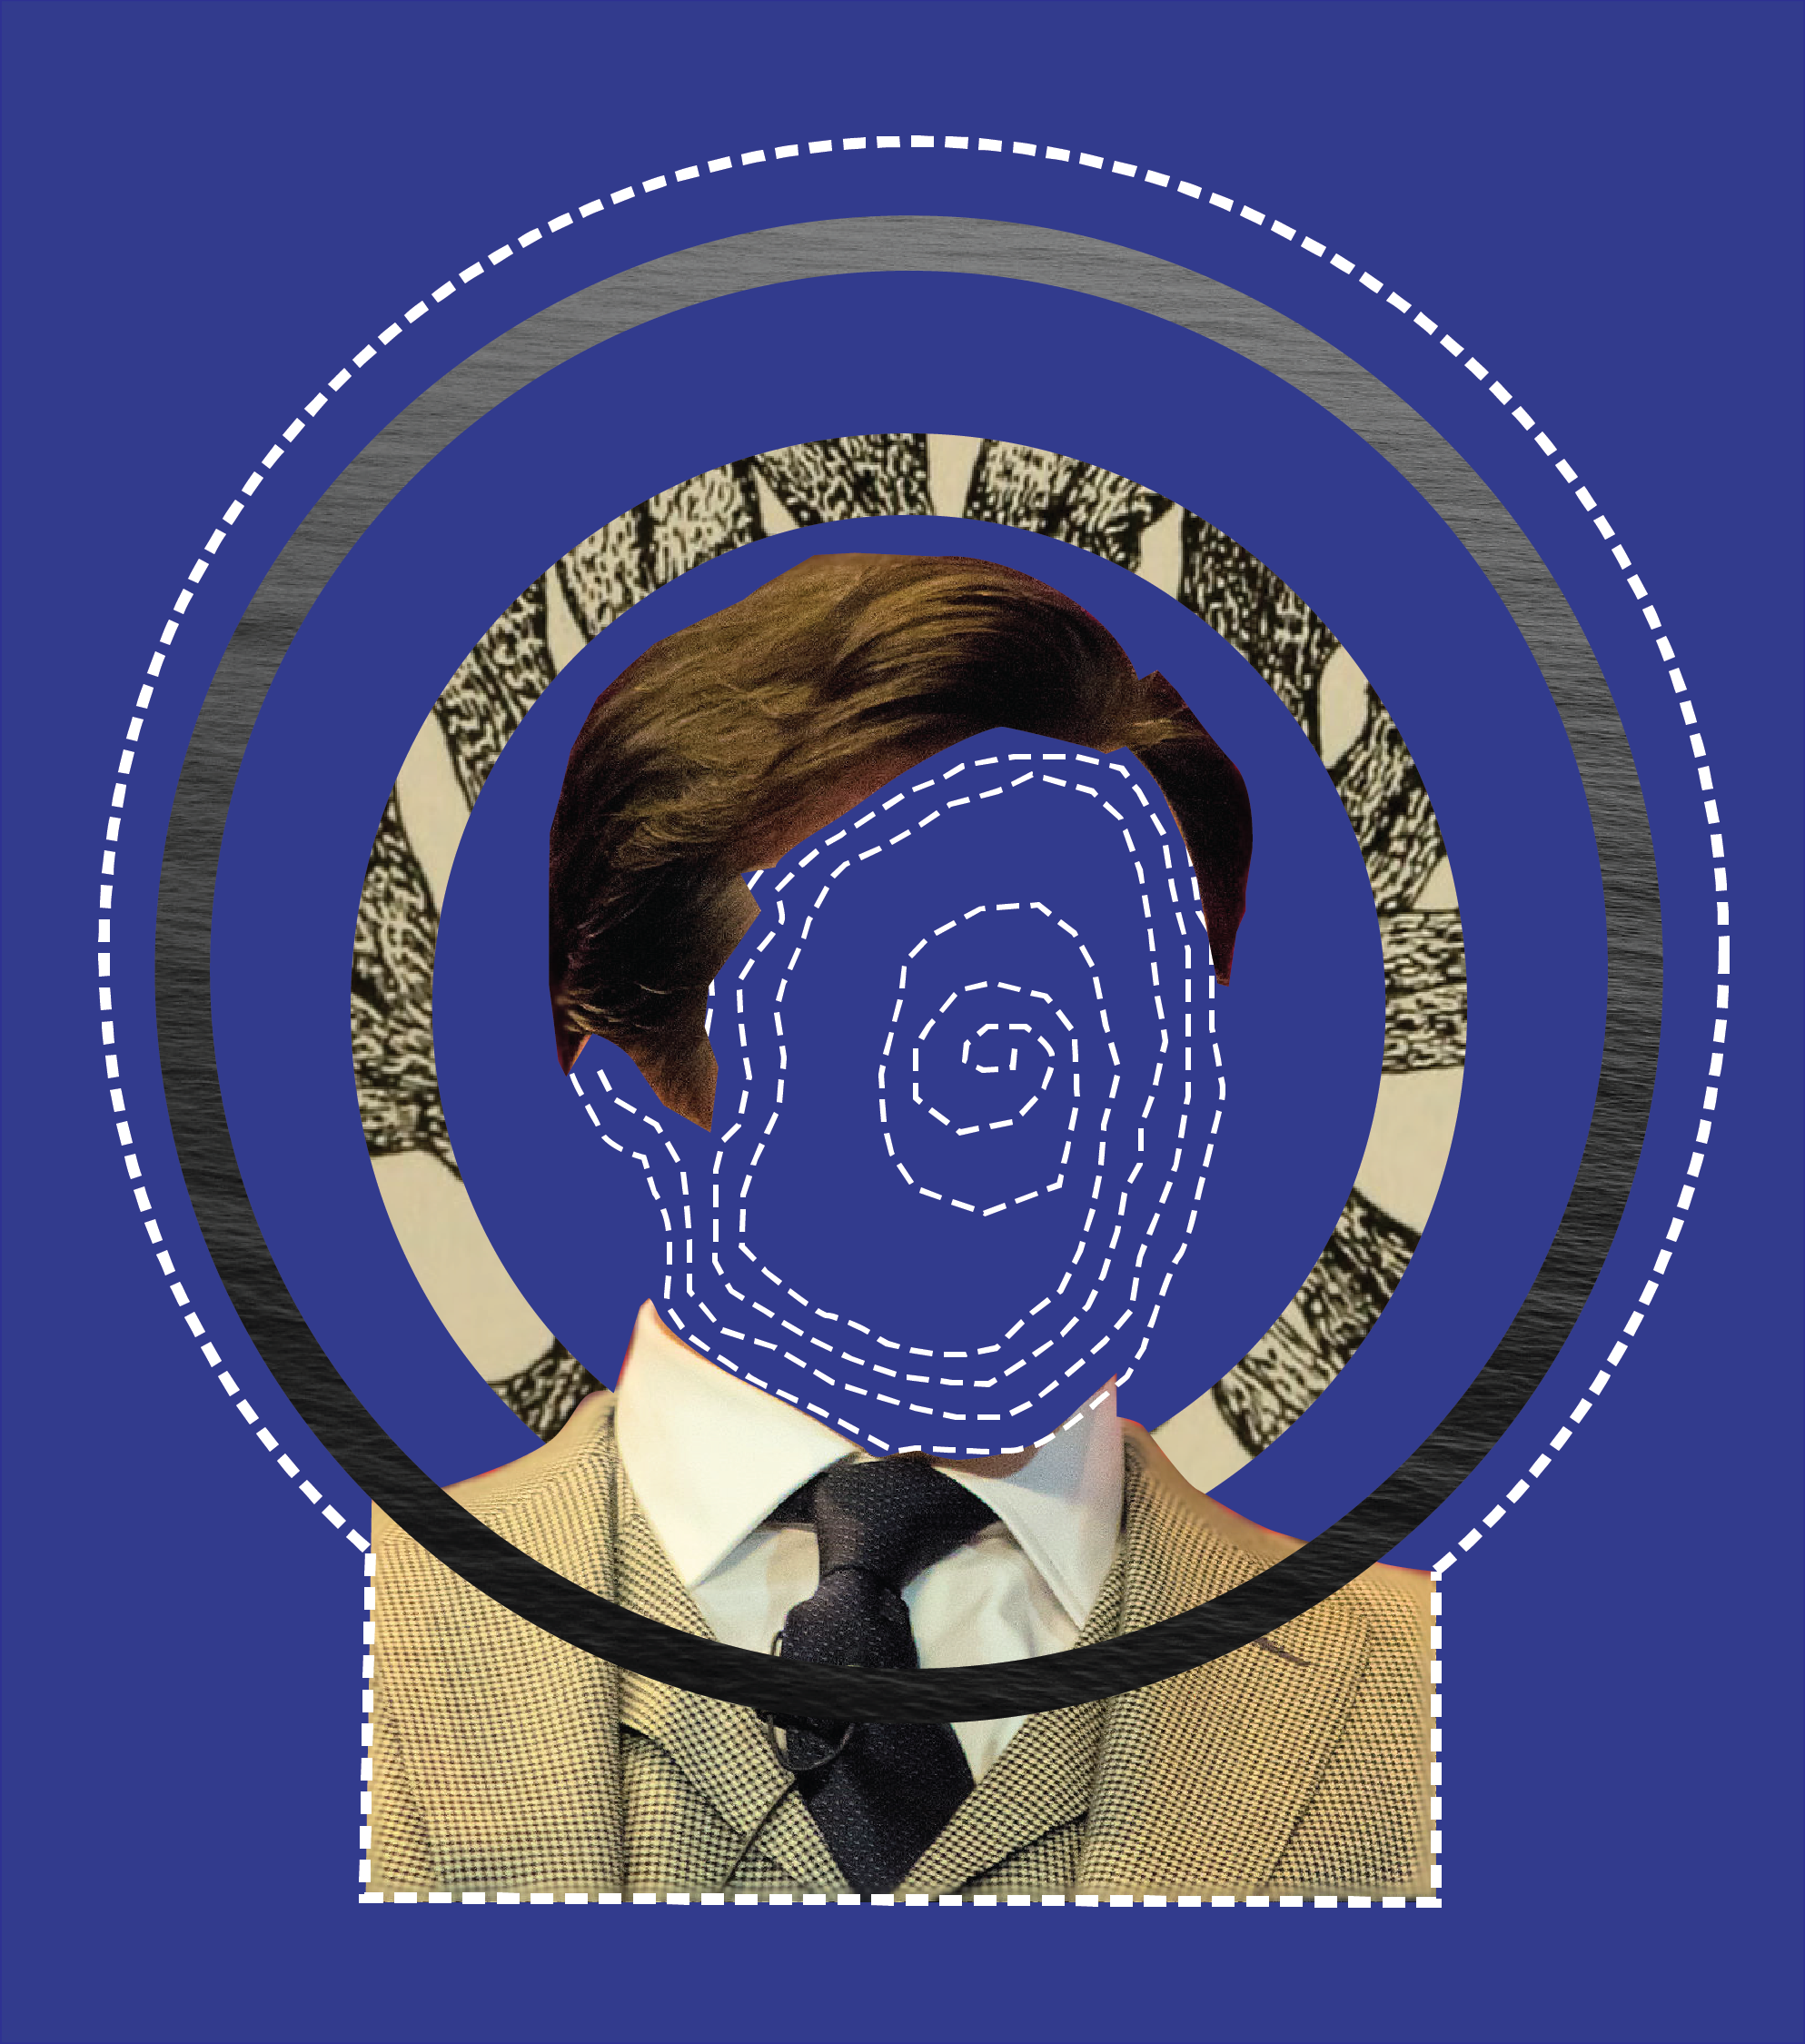 Mixed media collage piece of John Hamm's headshot. The space where the face is empty except for a dotted spiral. Surrounding the headshot are concentric collage rings.